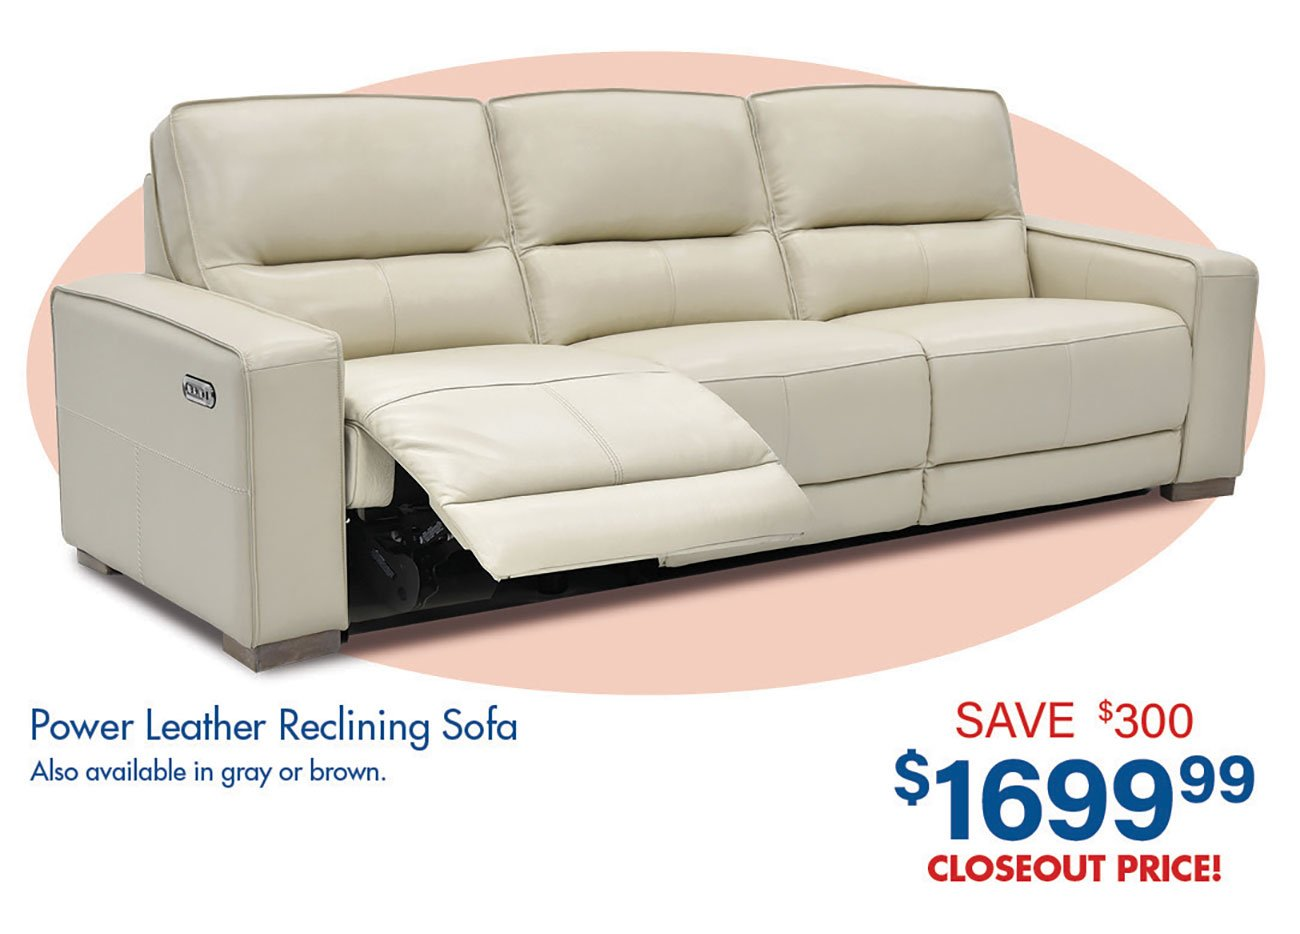 Power-Leather-Reclining-Sofa-White